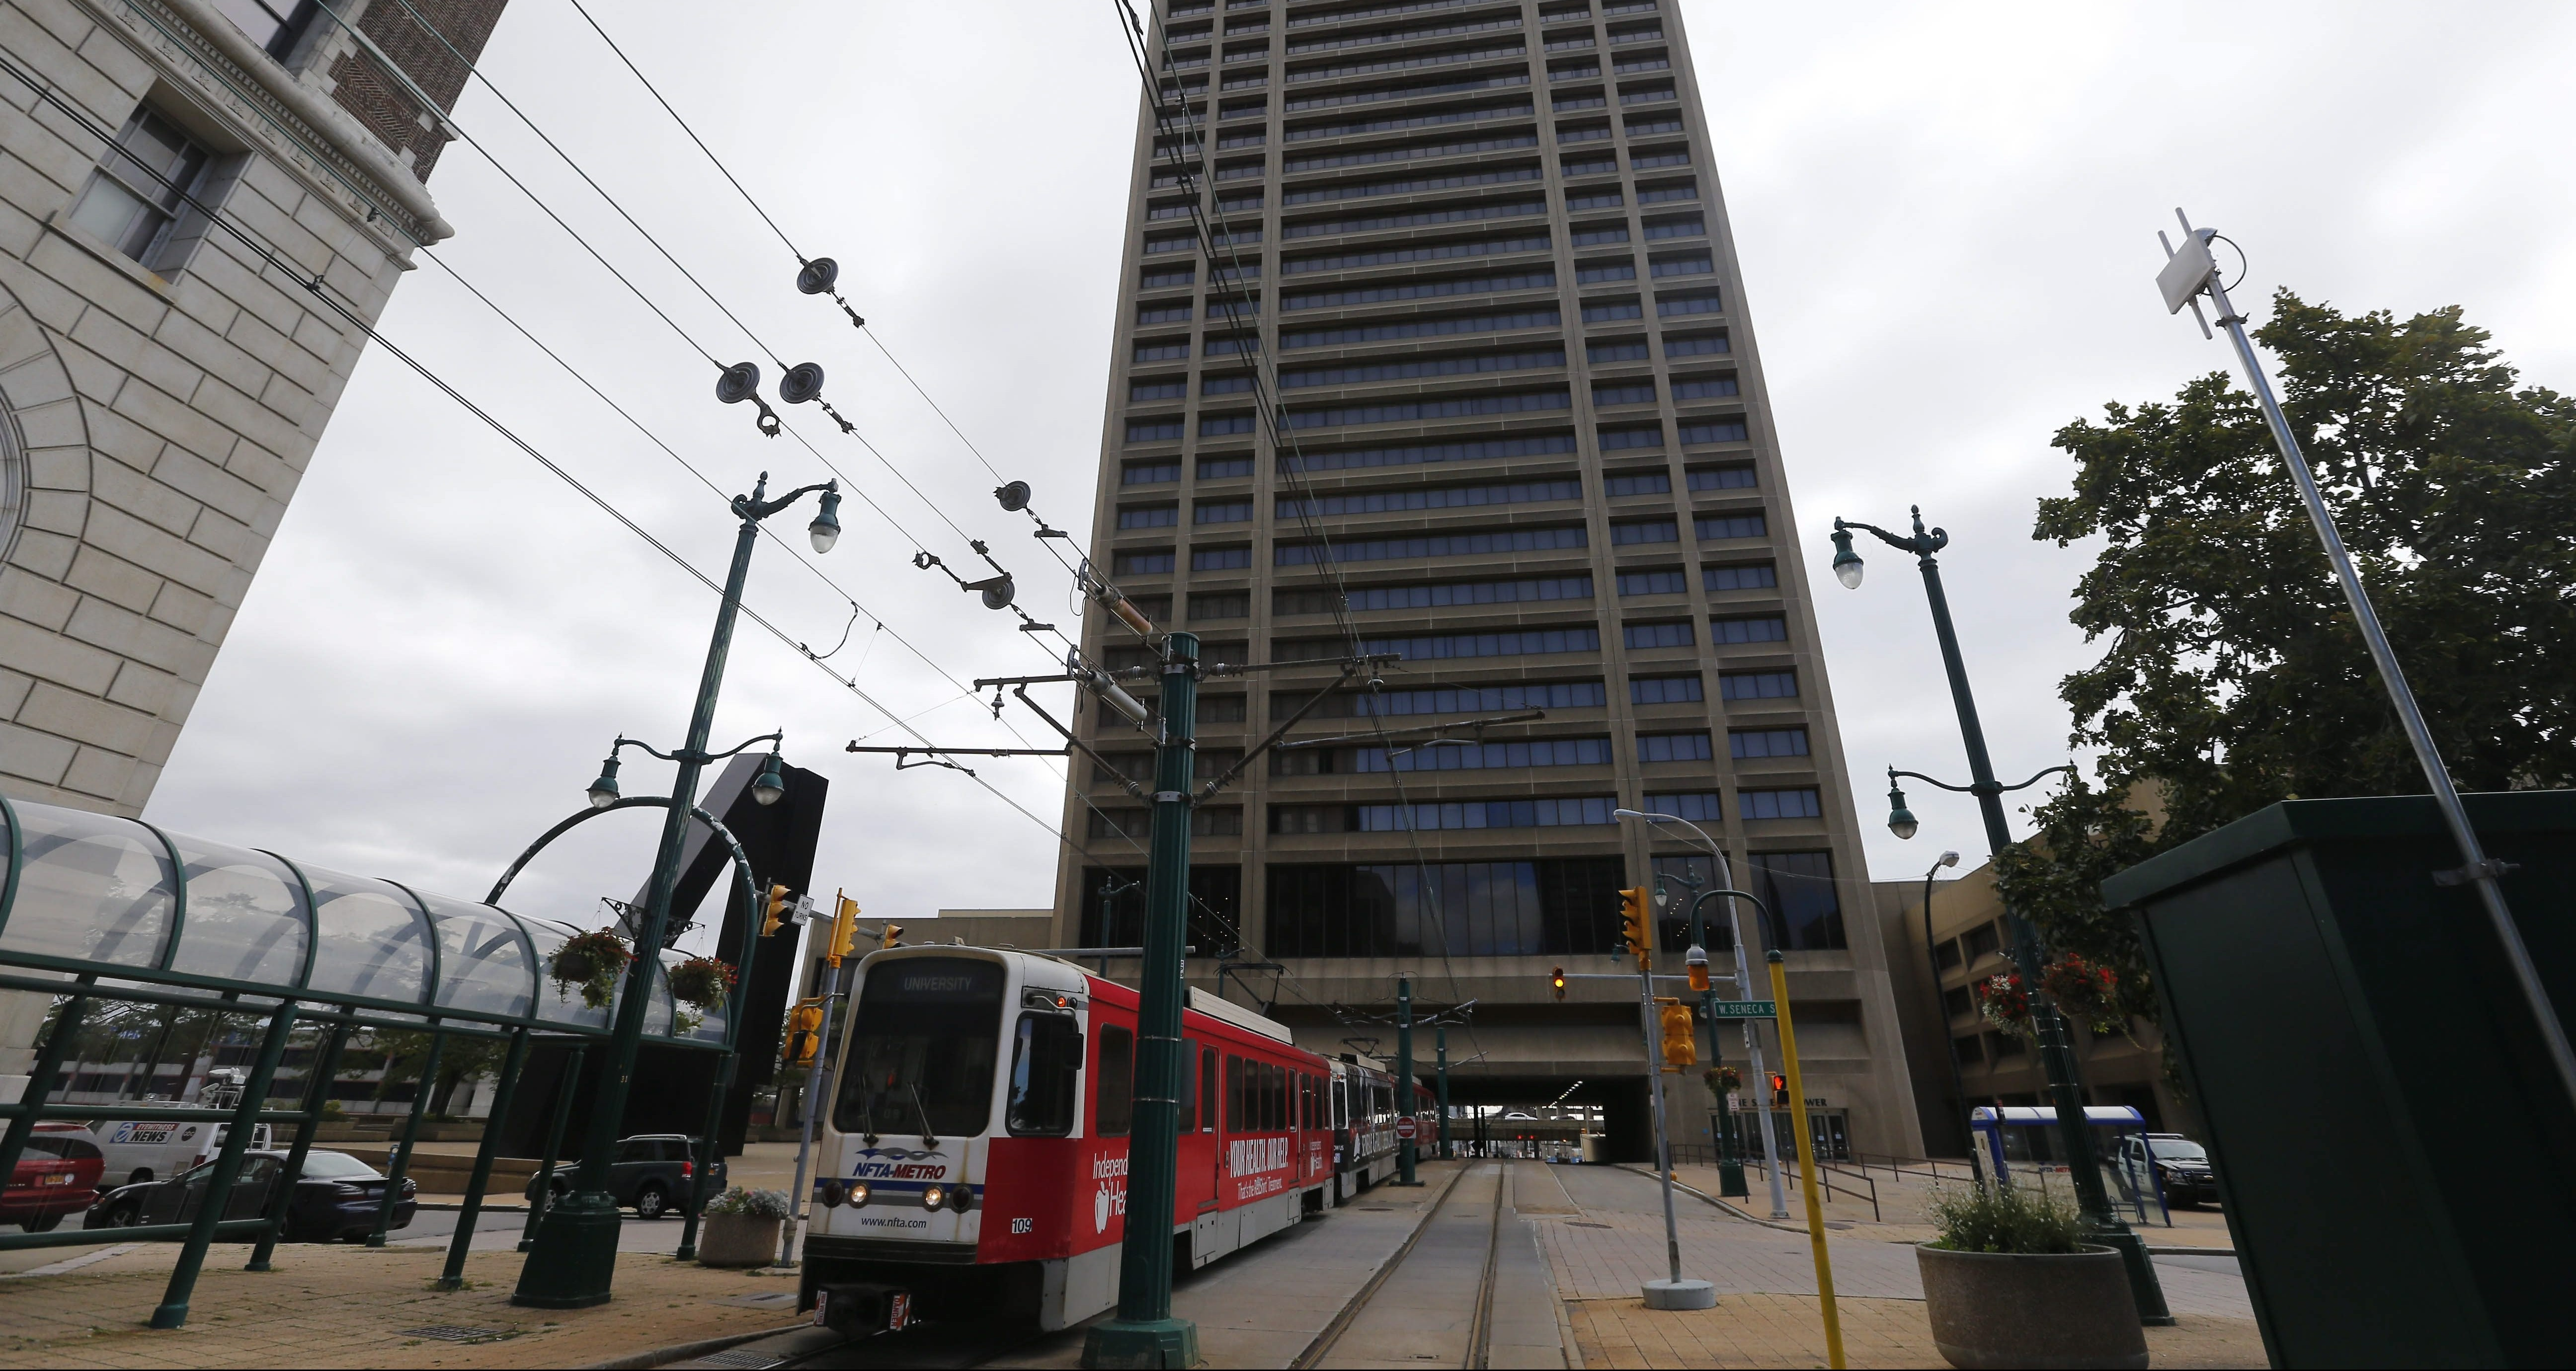 One Seneca Tower, now 95 percent vacant, most likely will be divided up into sections for redevelopment, perhaps including a high-end hotel, sky-high condos or luxury retail. But it won't be cheap or happen quickly and easily.